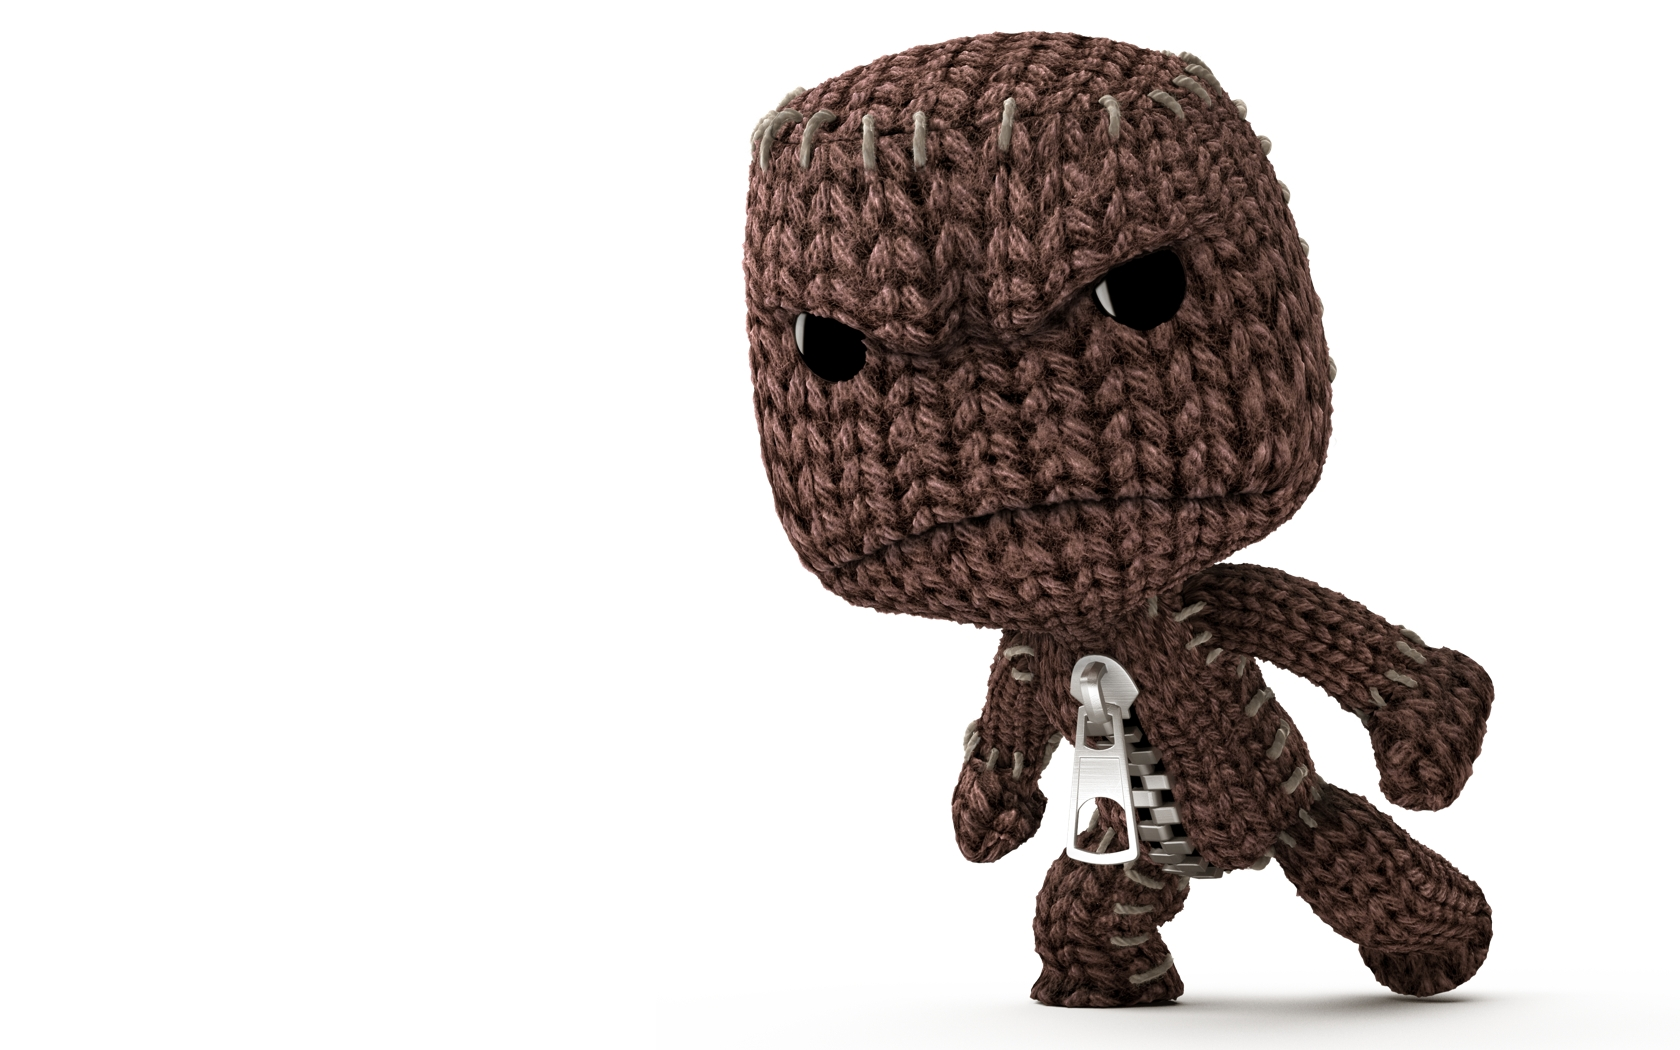 Sackboy Wallpaper